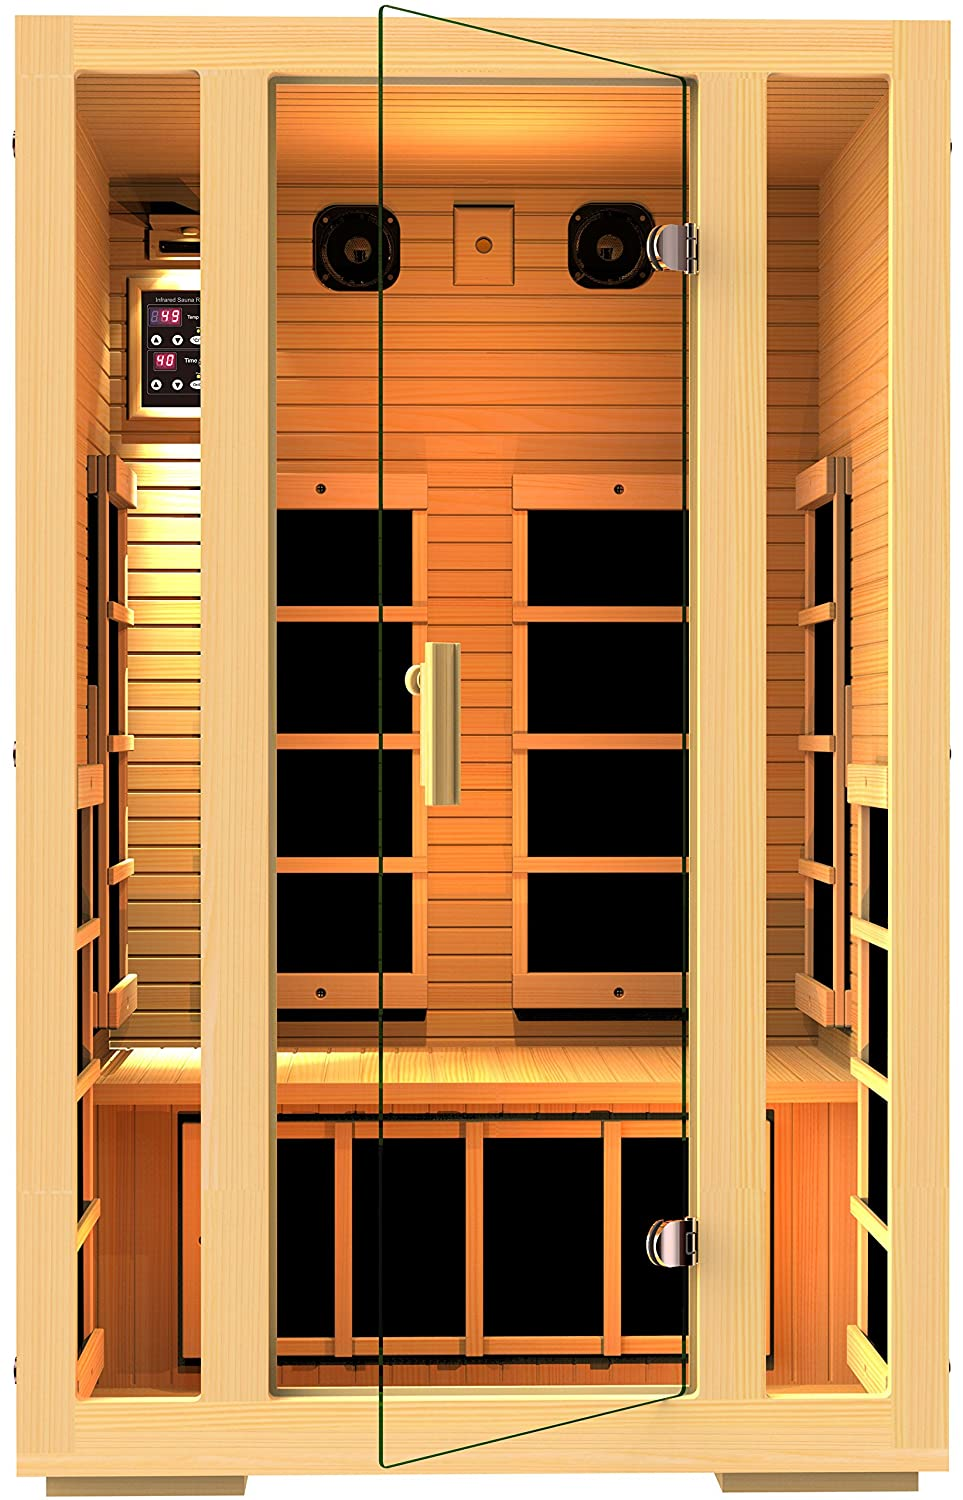 Amazon JNH Lifestyles 2 Person Far Infrared Sauna 7 Carbon Fiber Heaters Garden Outdoor